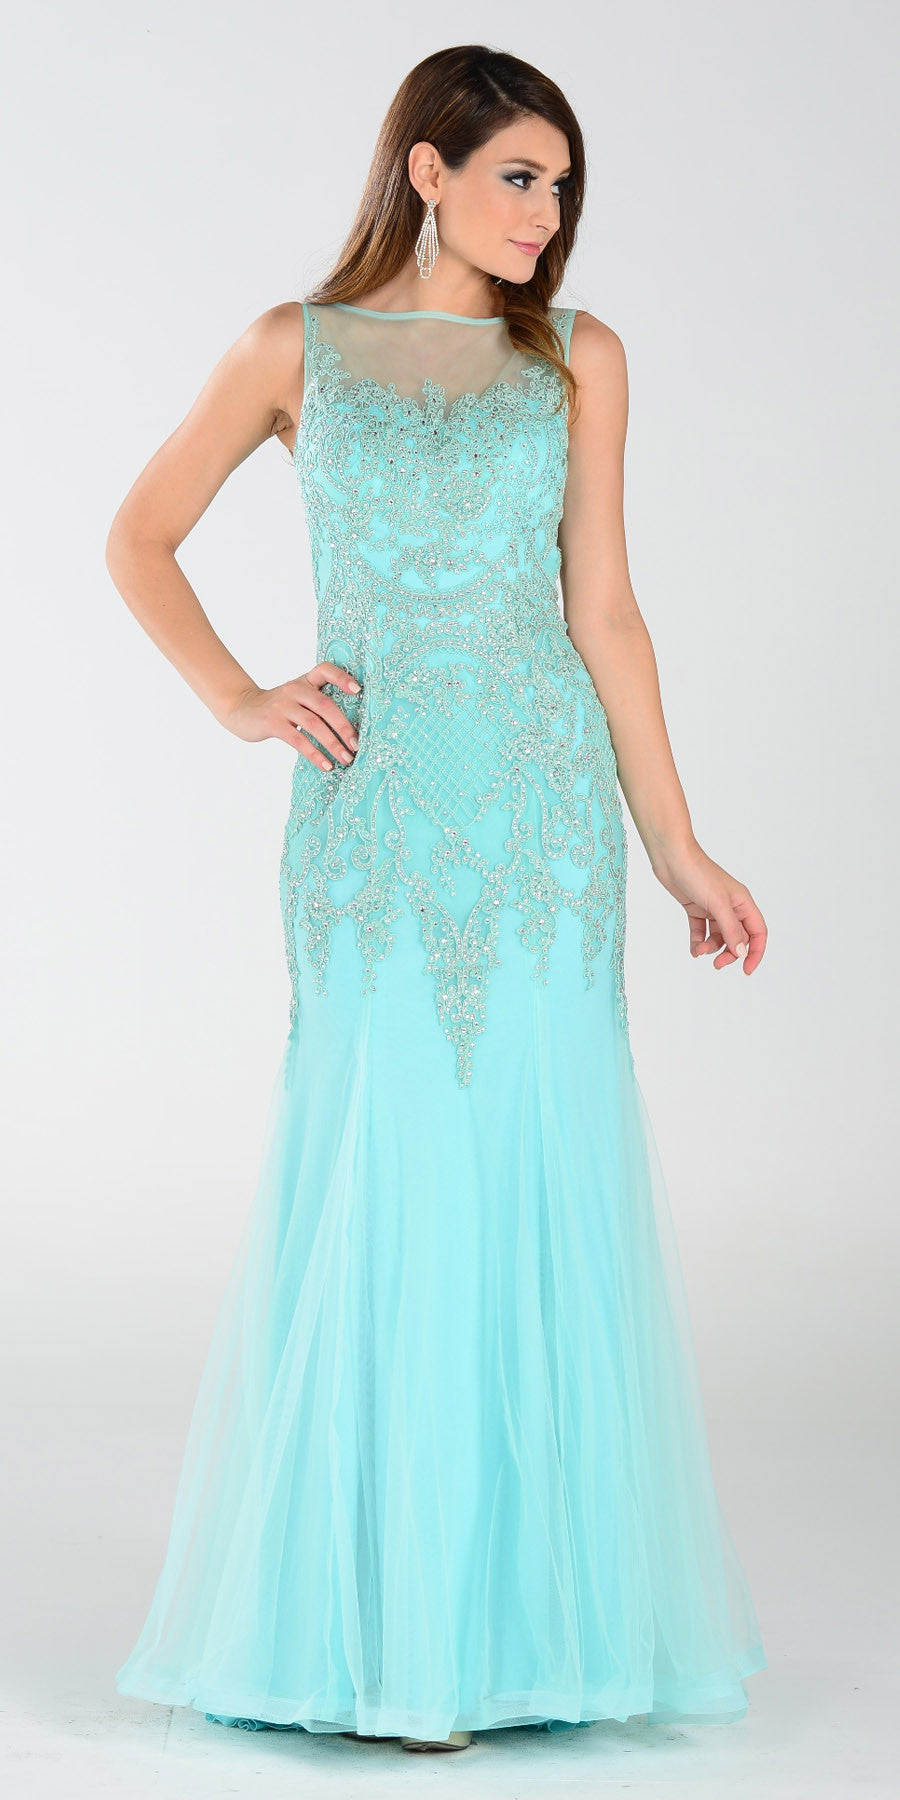 Poly USA 7338 Mermaid Silouette Prom Dress Mint Sheer Neck